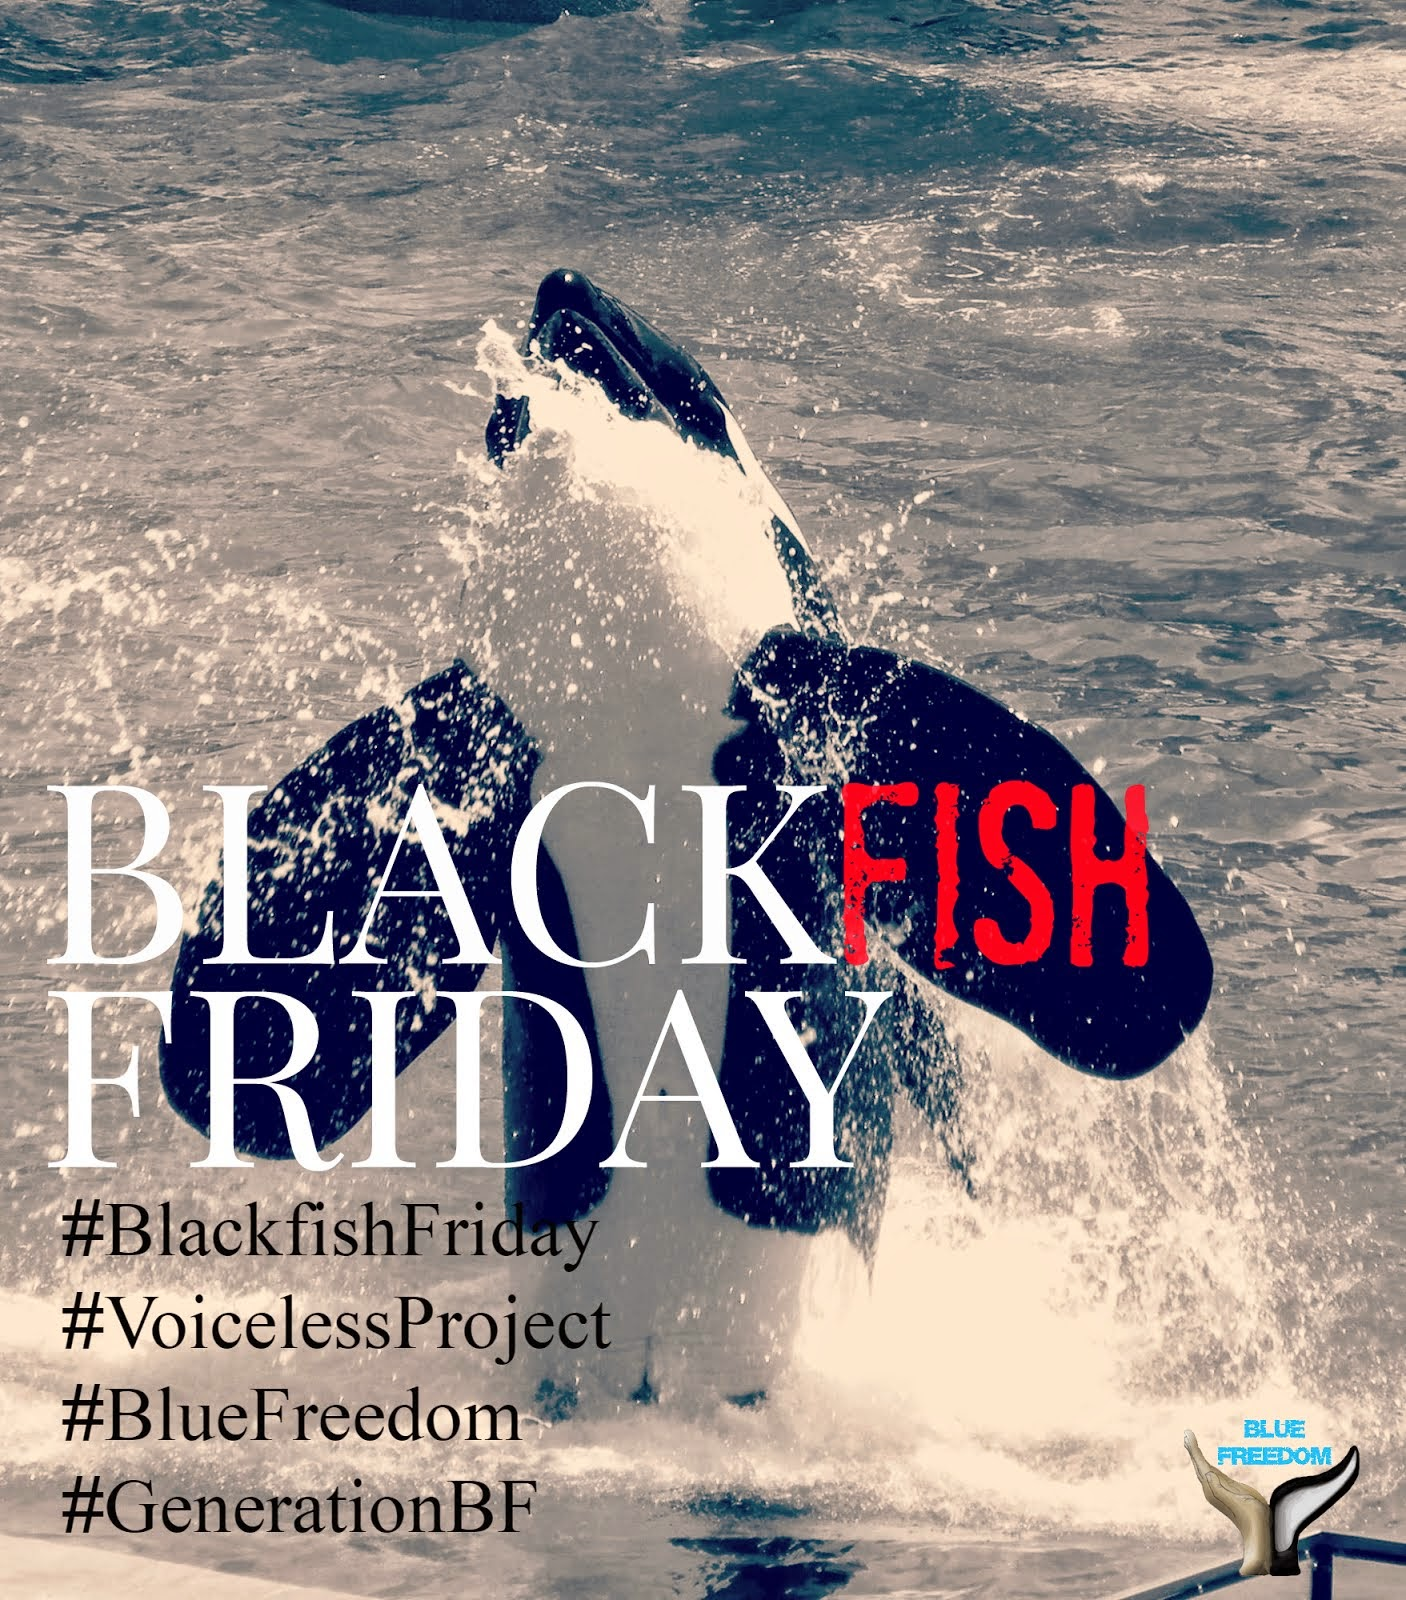 #BLACKFISHFRIDAY